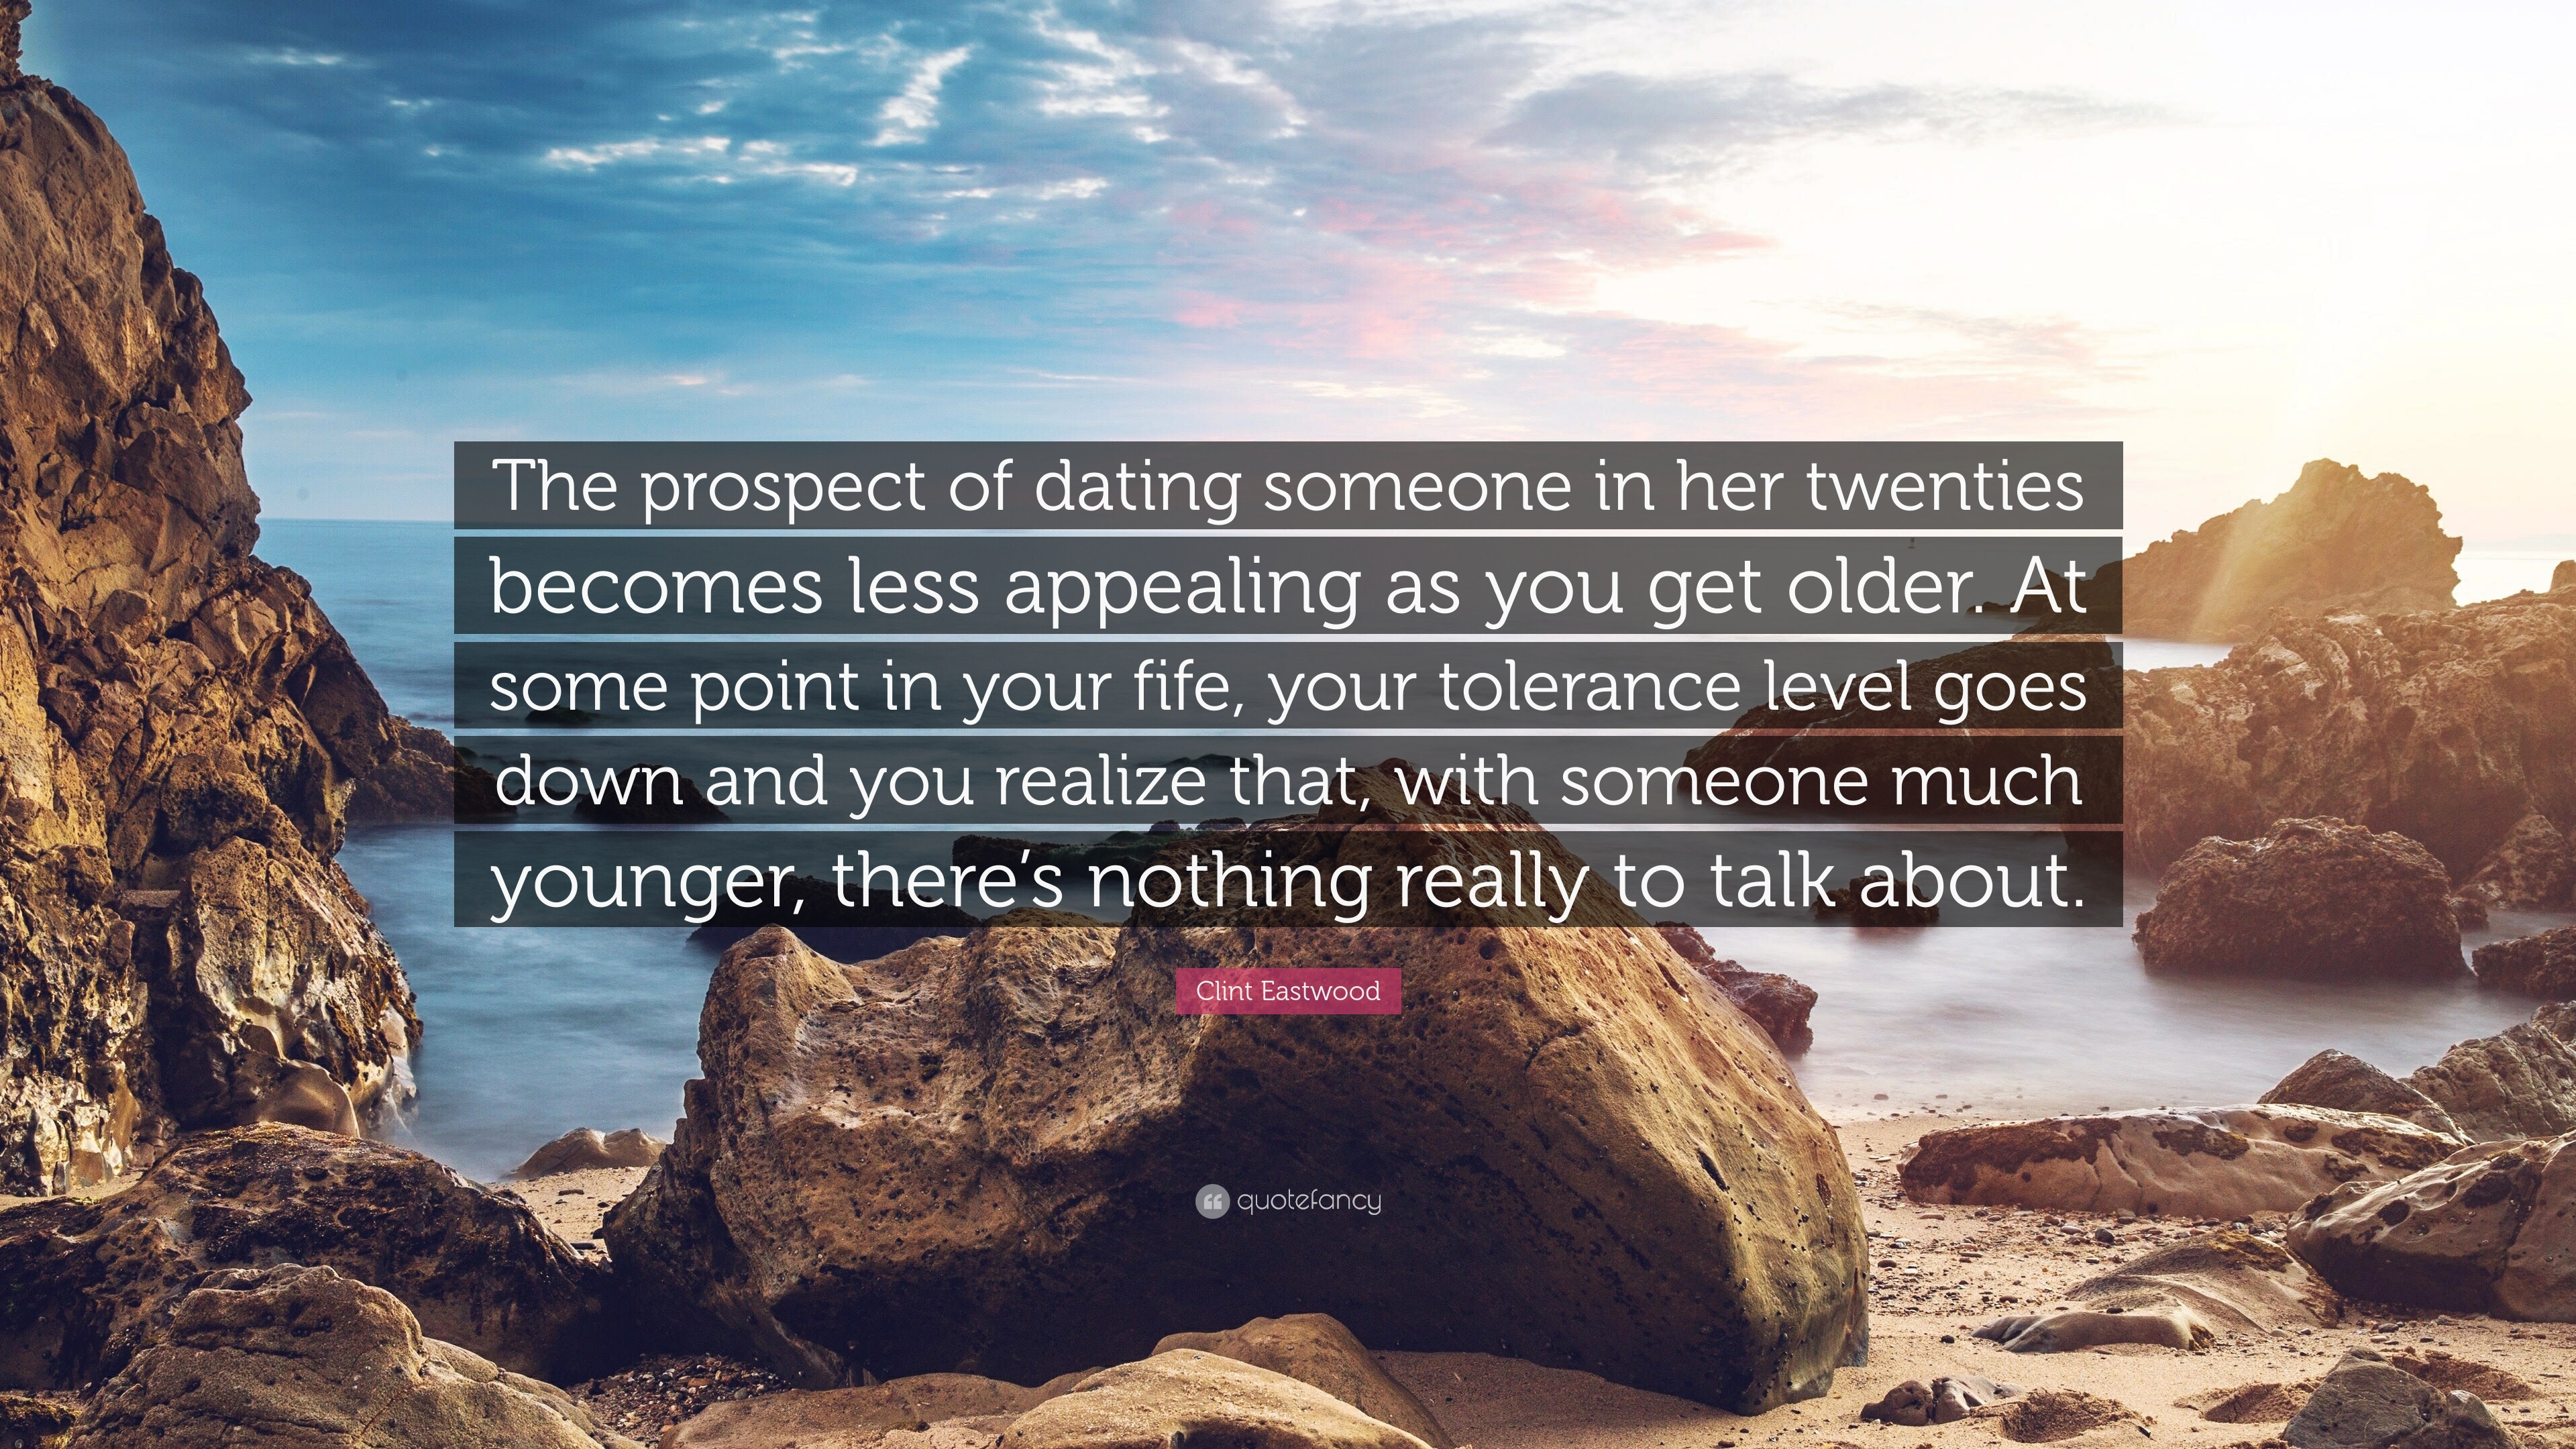 quotes dating someone older